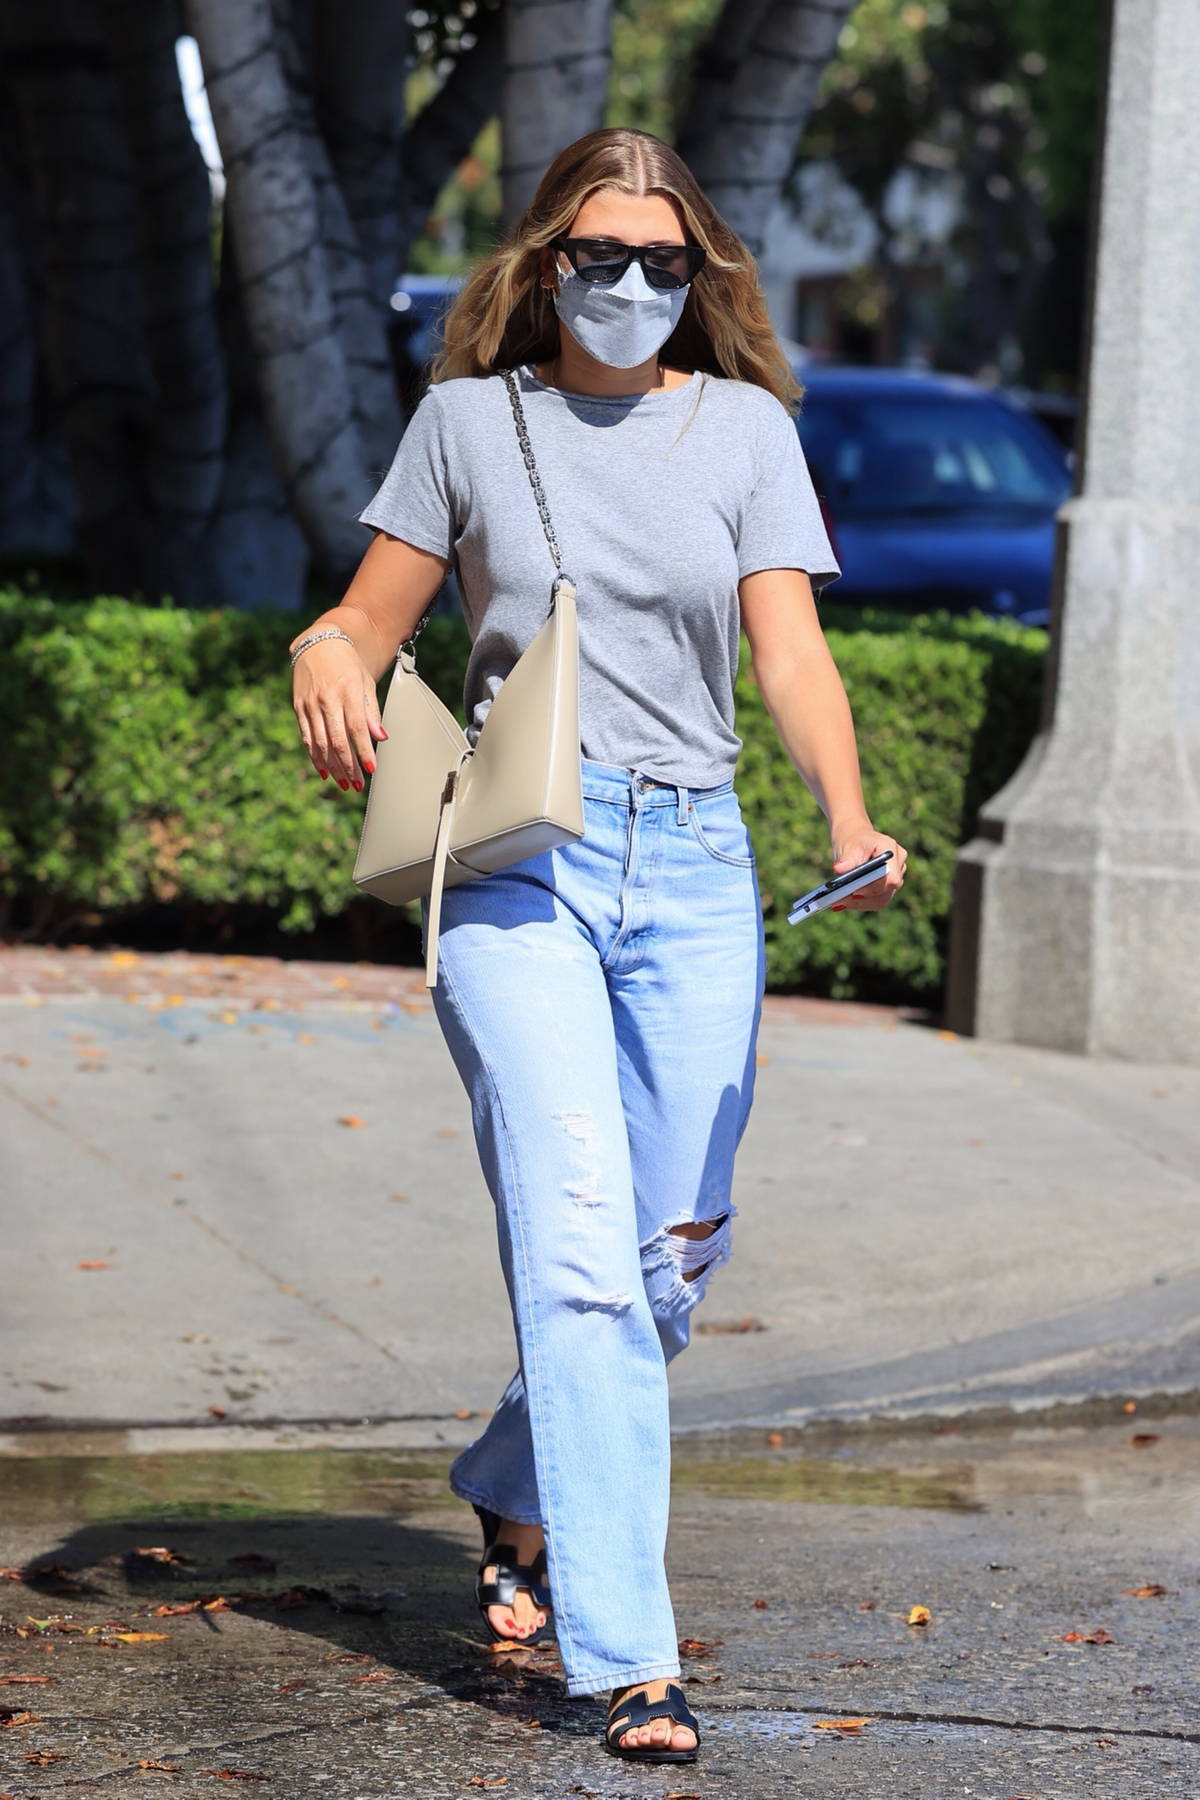 Sofia Richie steps out for some shopping with boyfriend Elliot Grainge on Melrose Place in West Hollywood, California